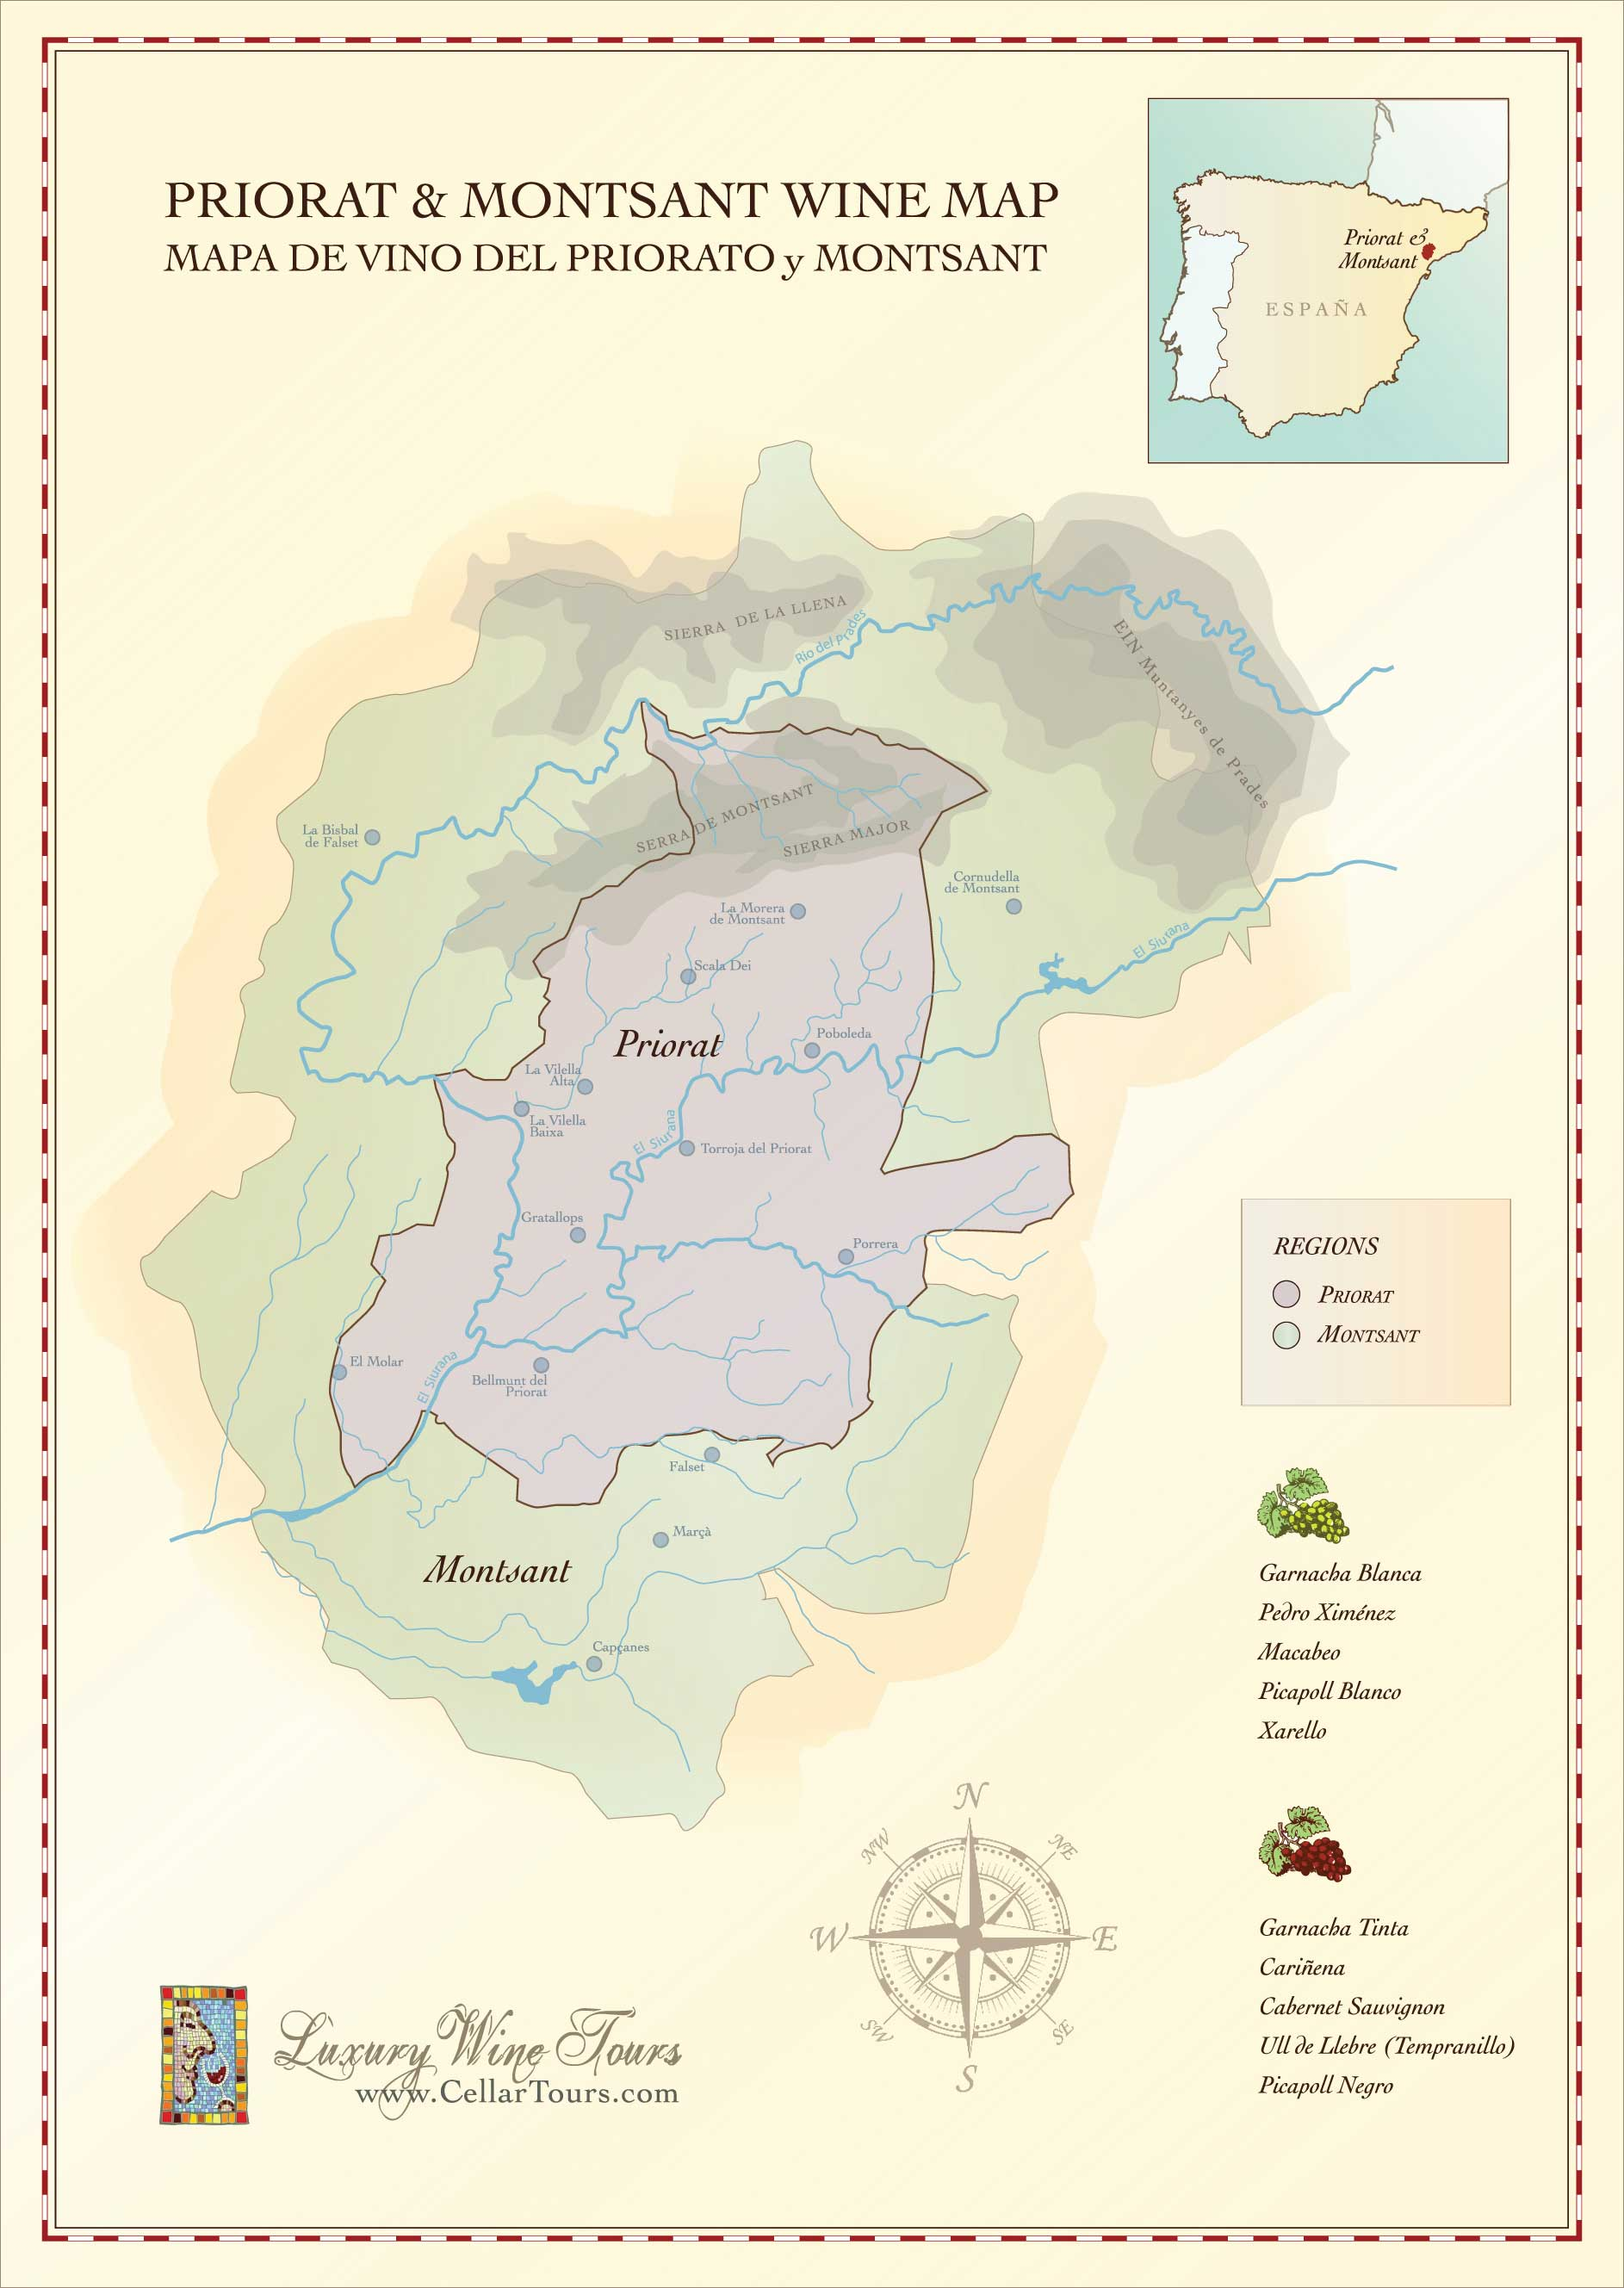 Priorat & Montsant Wine Region Map